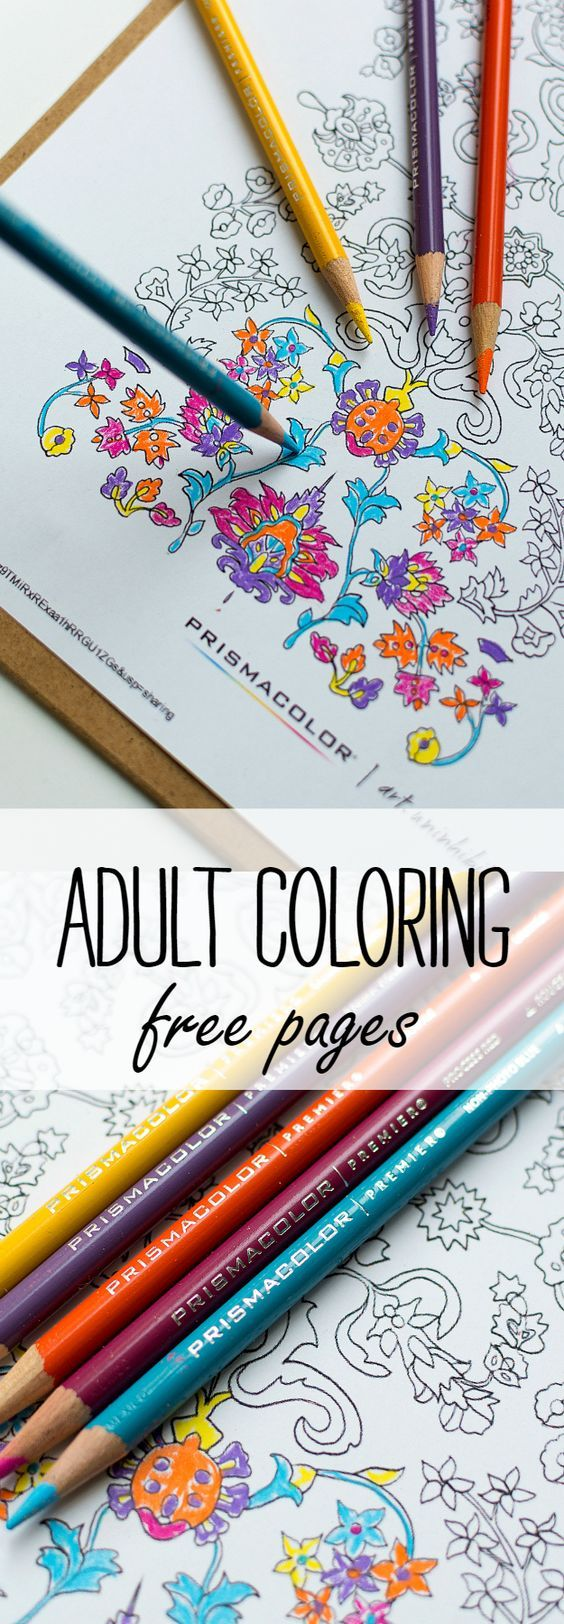 Coloring pages coloring book printable - Free Printable Adult Coloring Pages Color Them With Pinprismacolor Pencils And Markers From